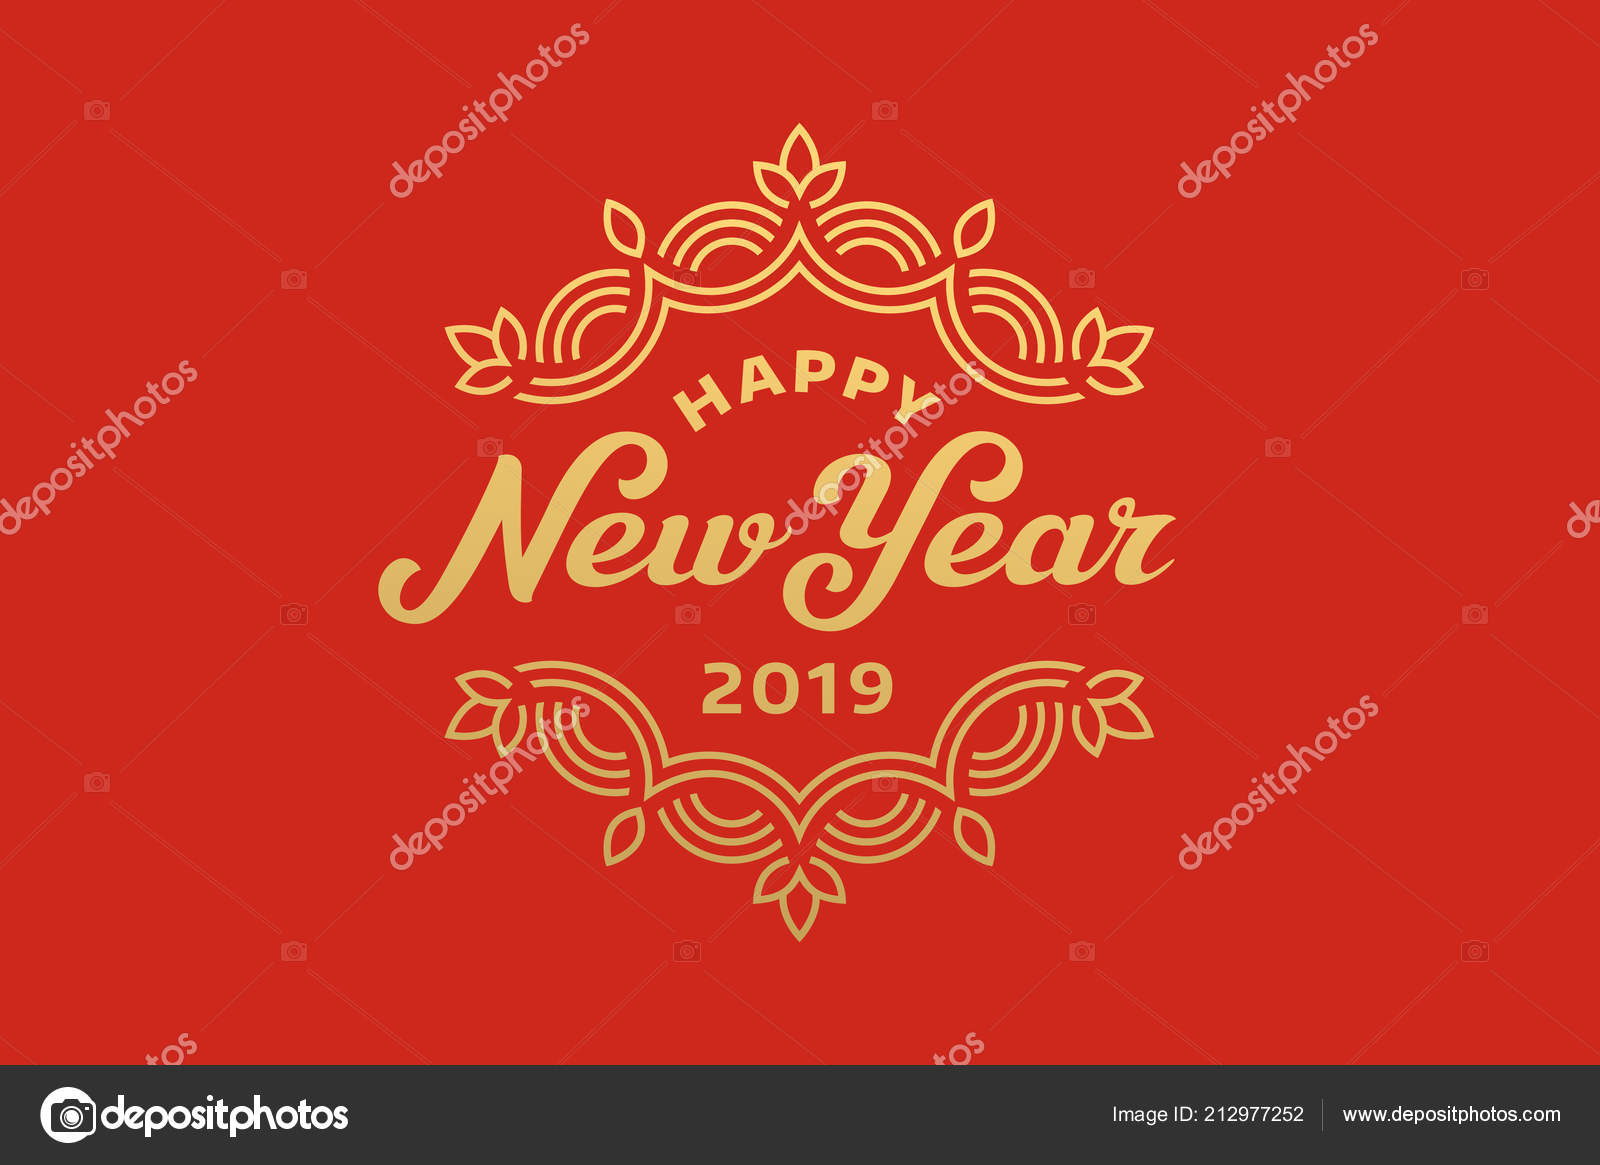 Happy New Year 2019 Lettering Greeting Card Design Stock Vector